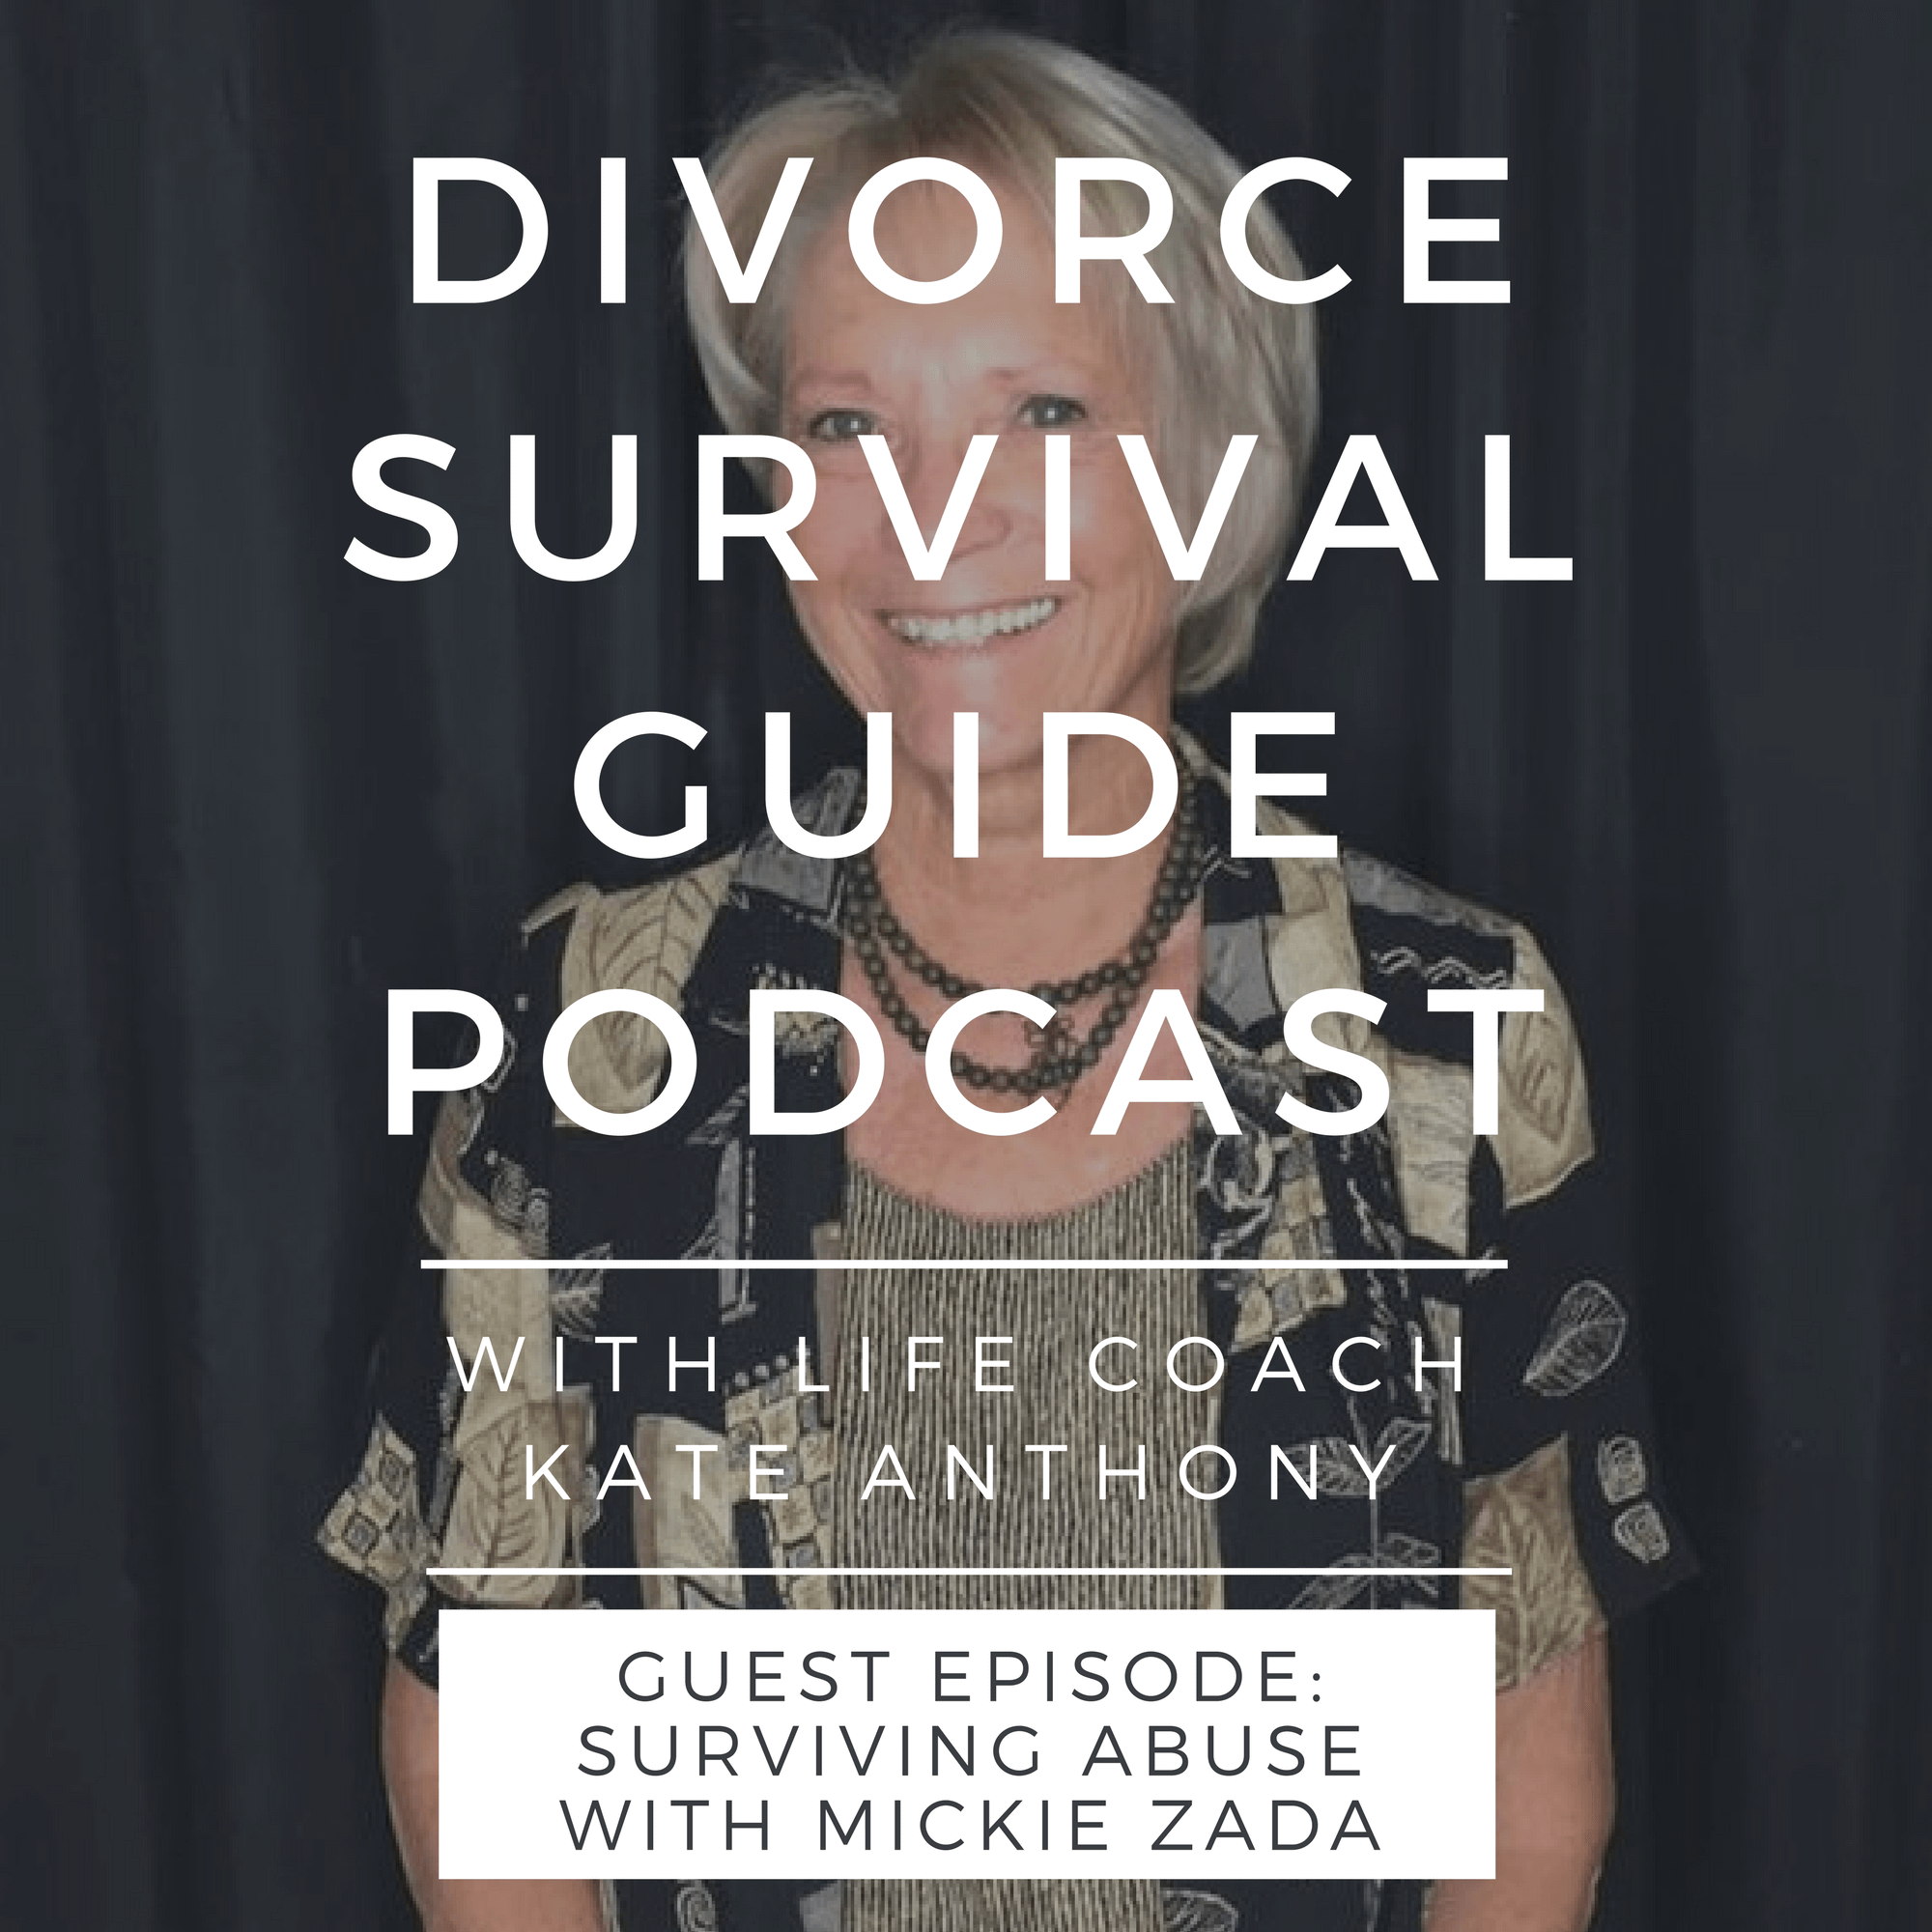 The Divorce Survival Guide Podcast - Surviving Abuse with Mickie Zada